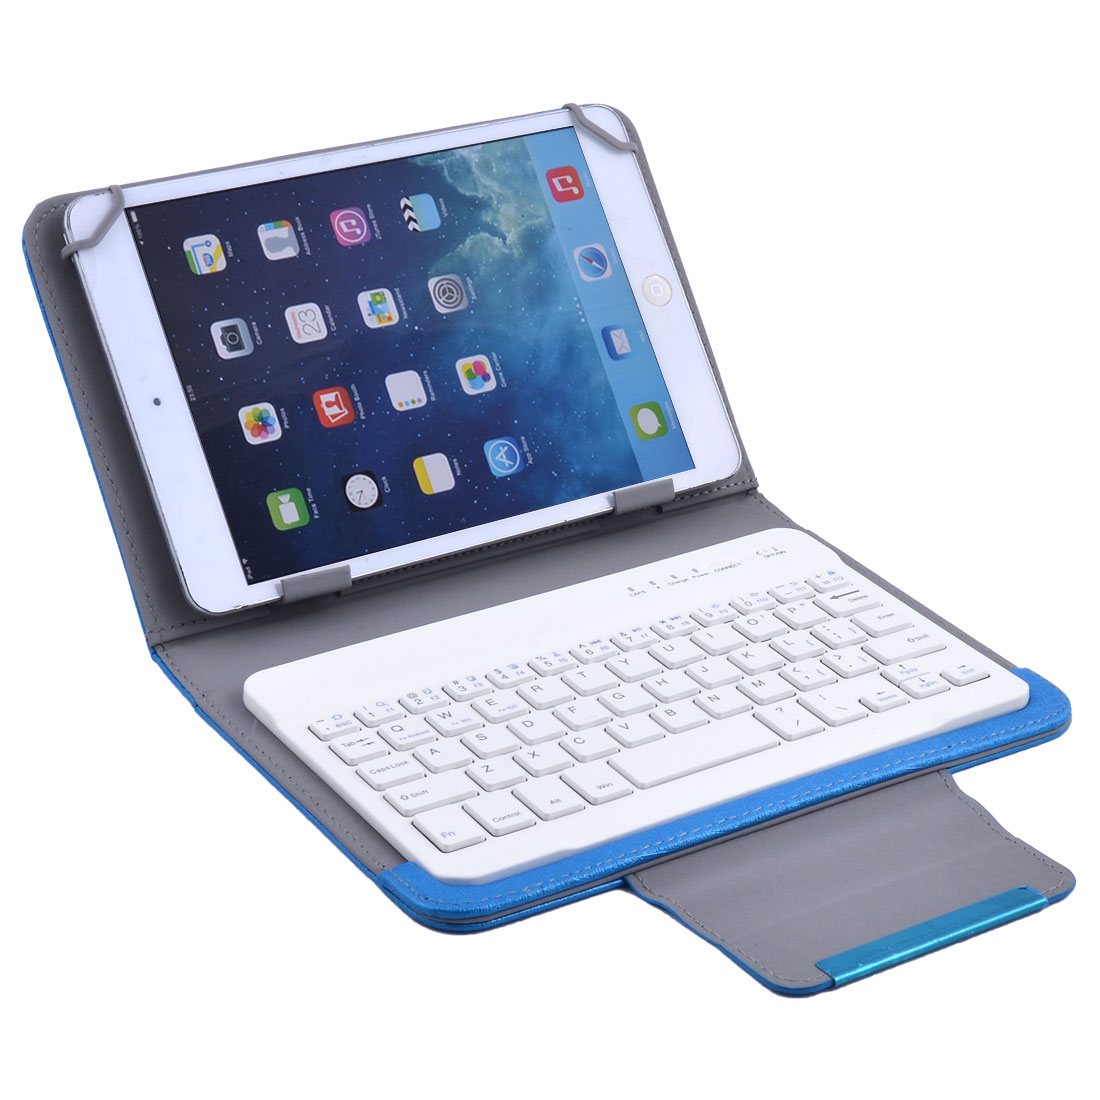 PU Leather Wireless Keyboard Leather Cover Case Blue for 7 Inch 8 Inch Tablet